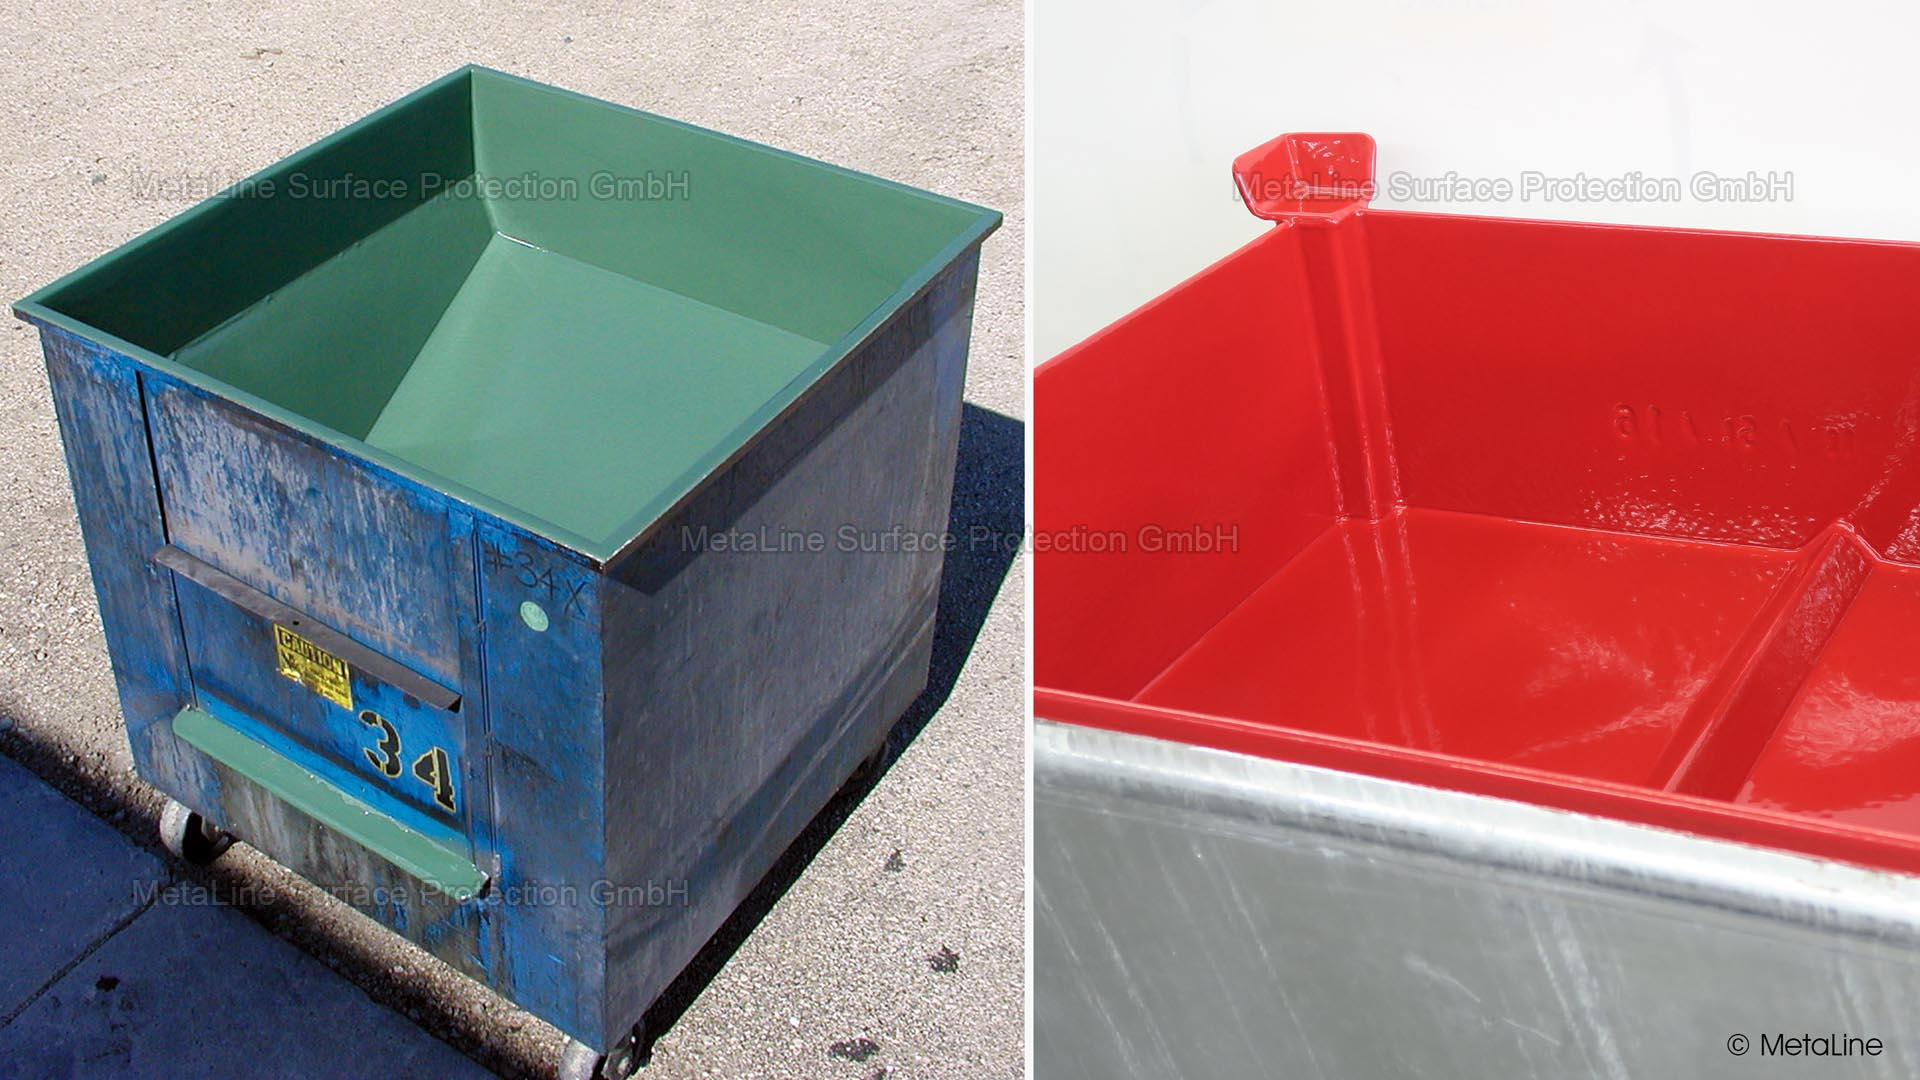 <!-- START: ConditionalContent --><!-- END: ConditionalContent -->   <!-- START: ConditionalContent --> Schaeferkasten; container; coating; insulation; part protection; container; impact protection; electrical insulation; single grade; scratch protection; damage; box; stock; lining <!-- END: ConditionalContent -->   <!-- START: ConditionalContent --><!-- END: ConditionalContent -->   <!-- START: ConditionalContent --><!-- END: ConditionalContent -->